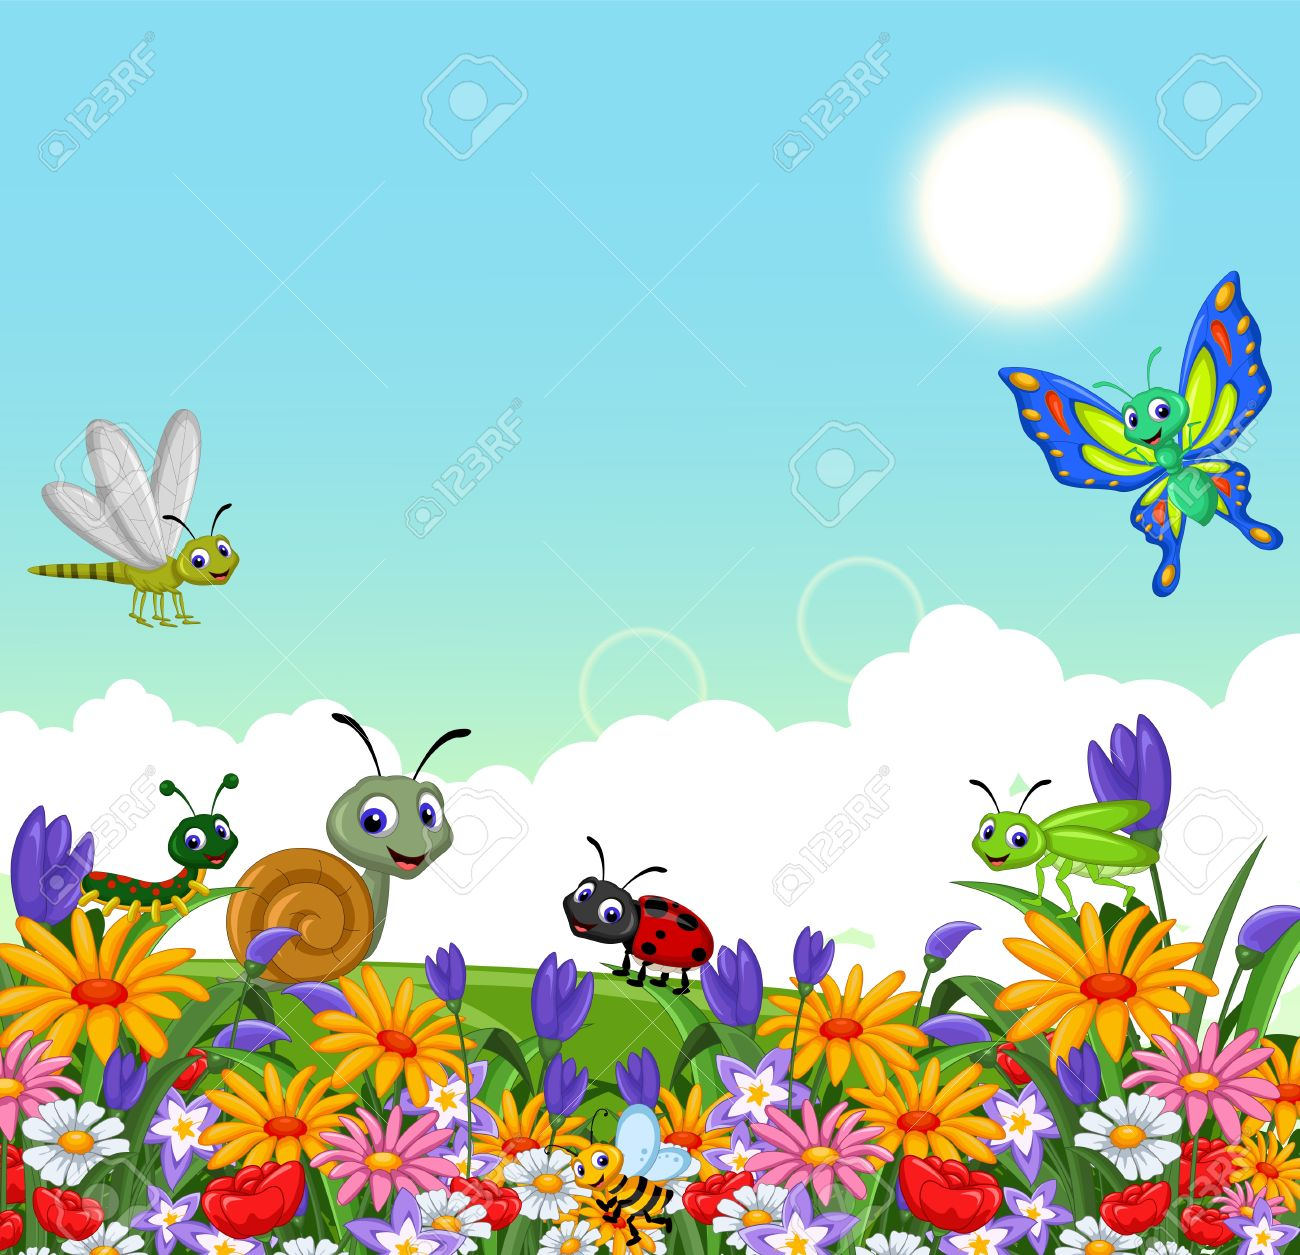 collection of insects in the flower garden.